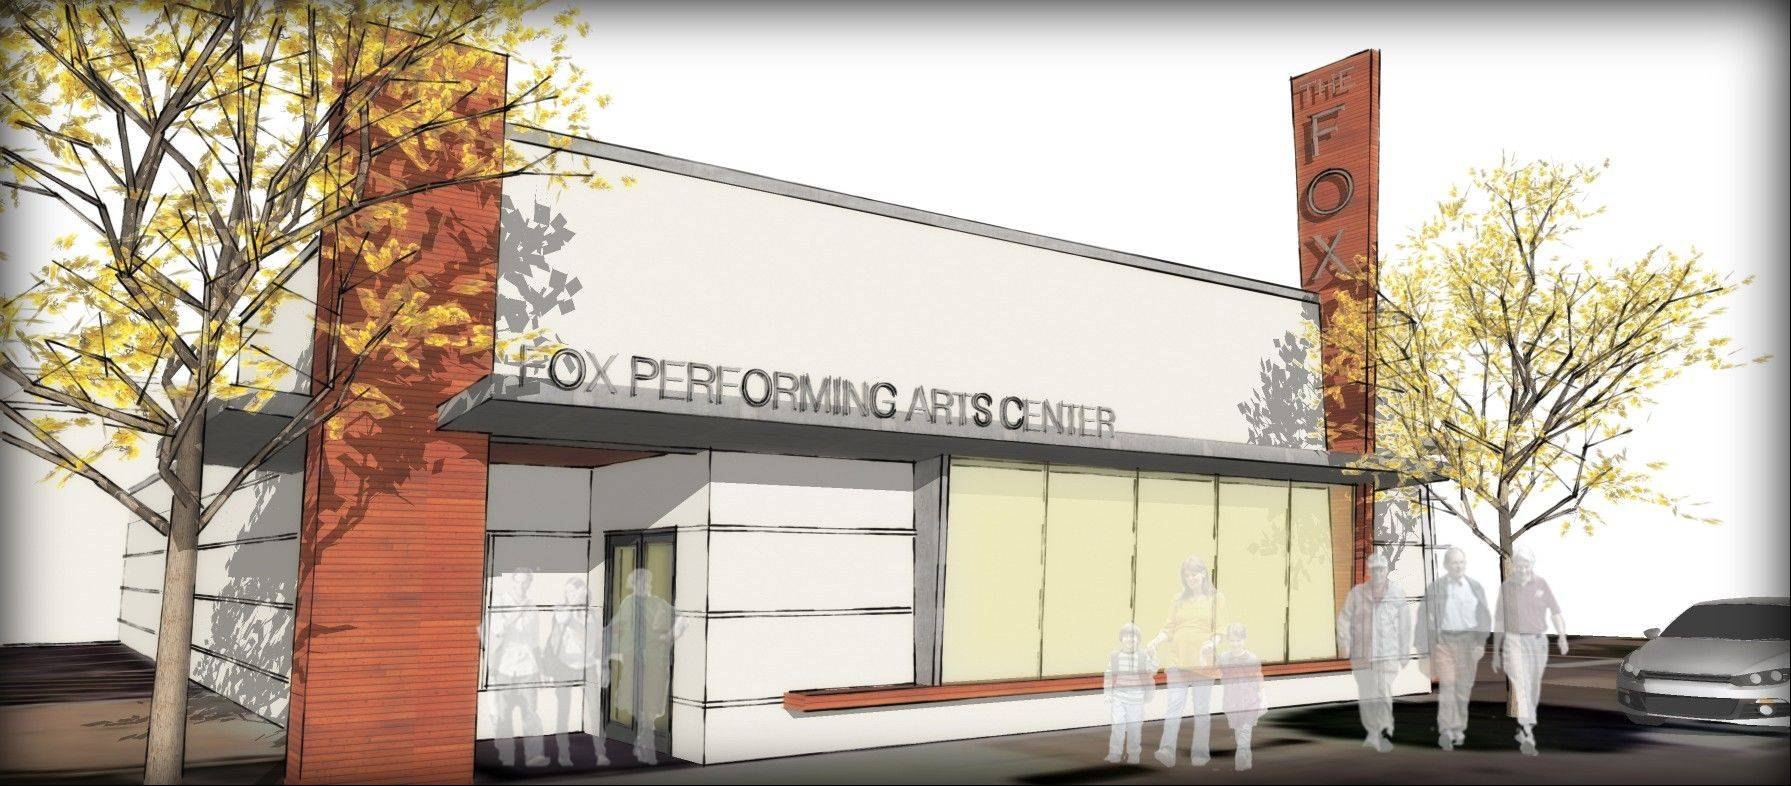 West Dundee sets course for performing arts center